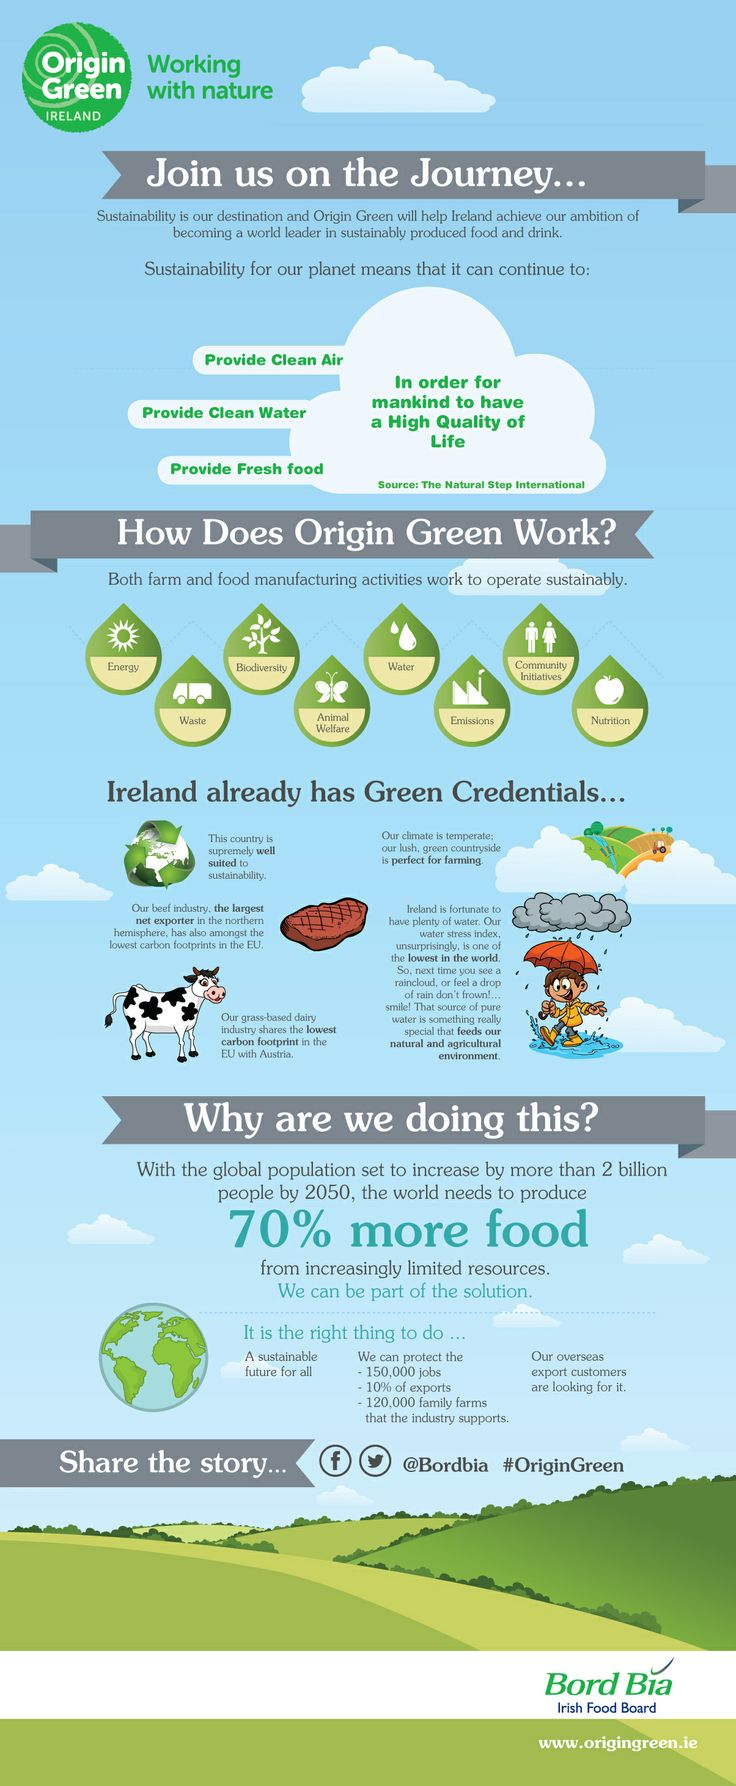 Origin Green. Find out more on Origin Green at the following link: http://www.bordbia.ie/OriginGreen/Pages/OriginGreenHome.aspx